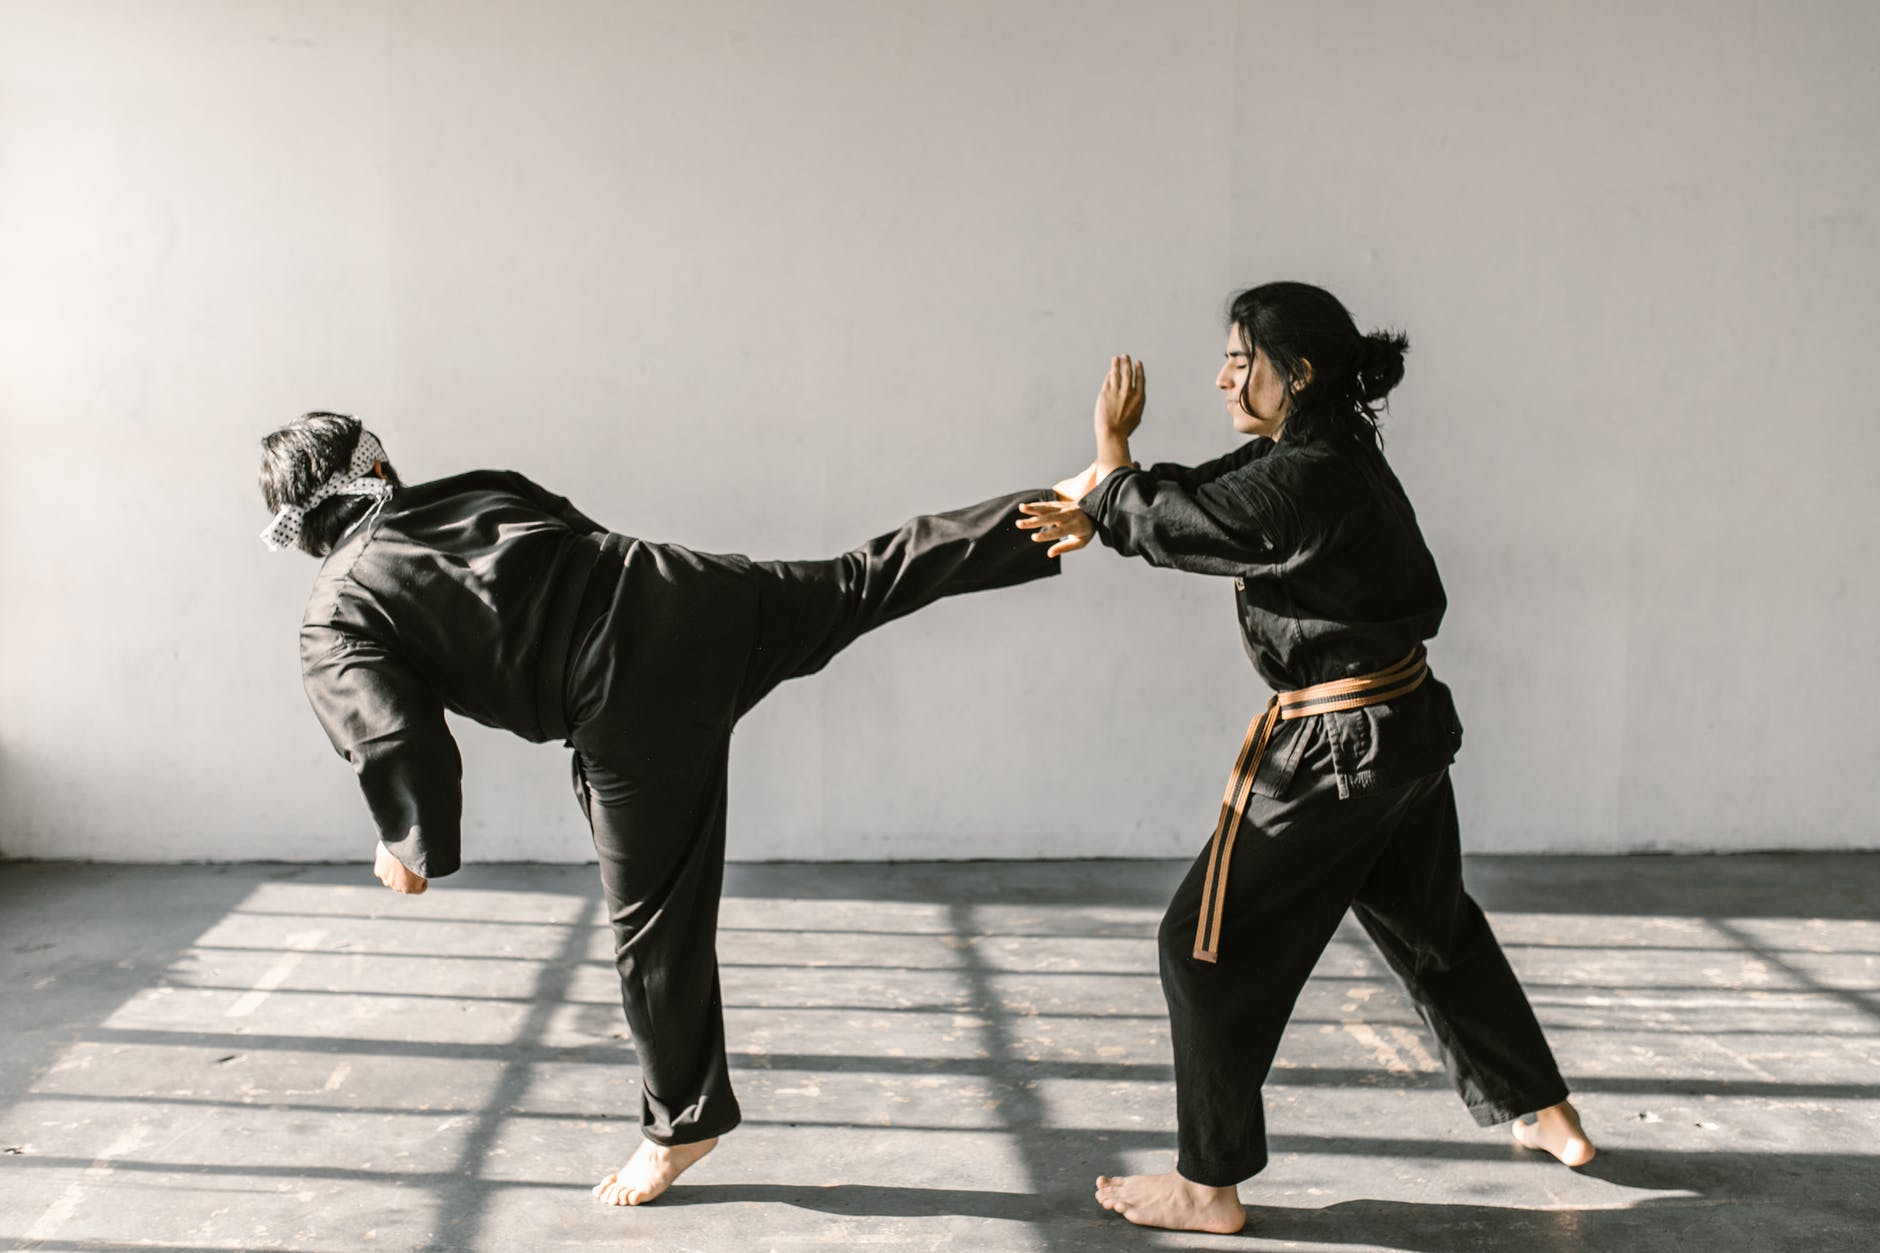 Two people sparring in an unspecified martial art.